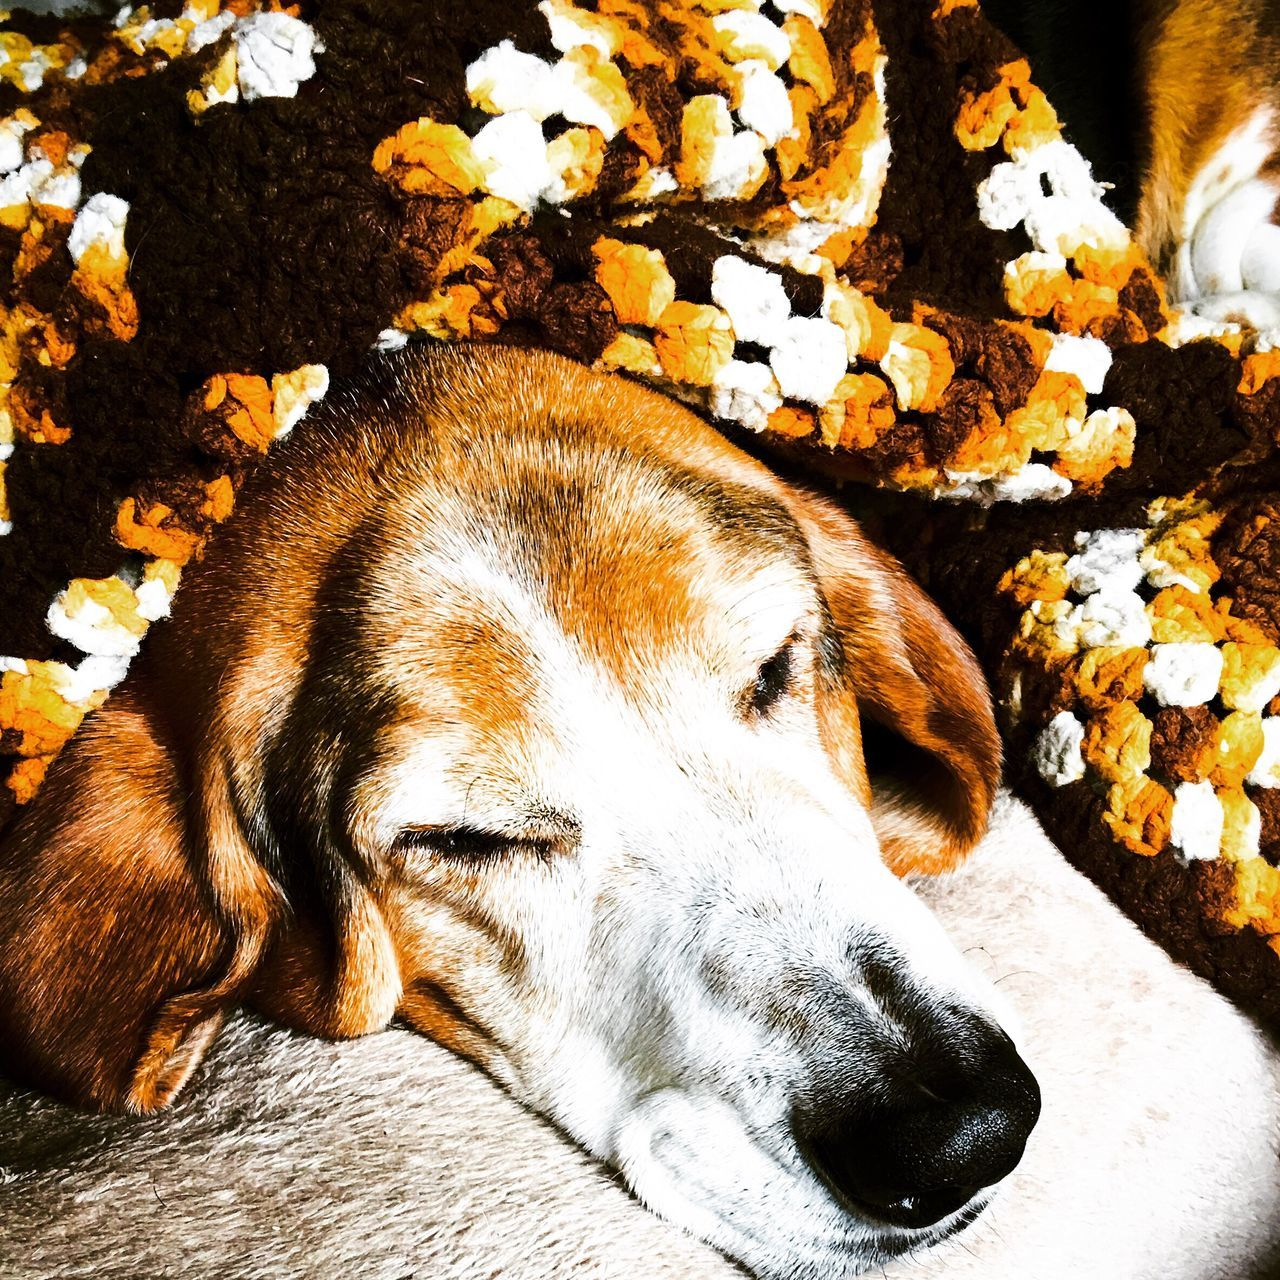 A comfy Cooper Myseniorhound MySweetheart Relaxedand Happy Check This Out That's Me Hanging Out Hello World Cheese! Enjoying Life Myhandsomeboy Chill Mode Posing For The Camera Iphonephotography Bassethounds Bassetphotography Bassetmoments Ilovebassethounds Snuggles